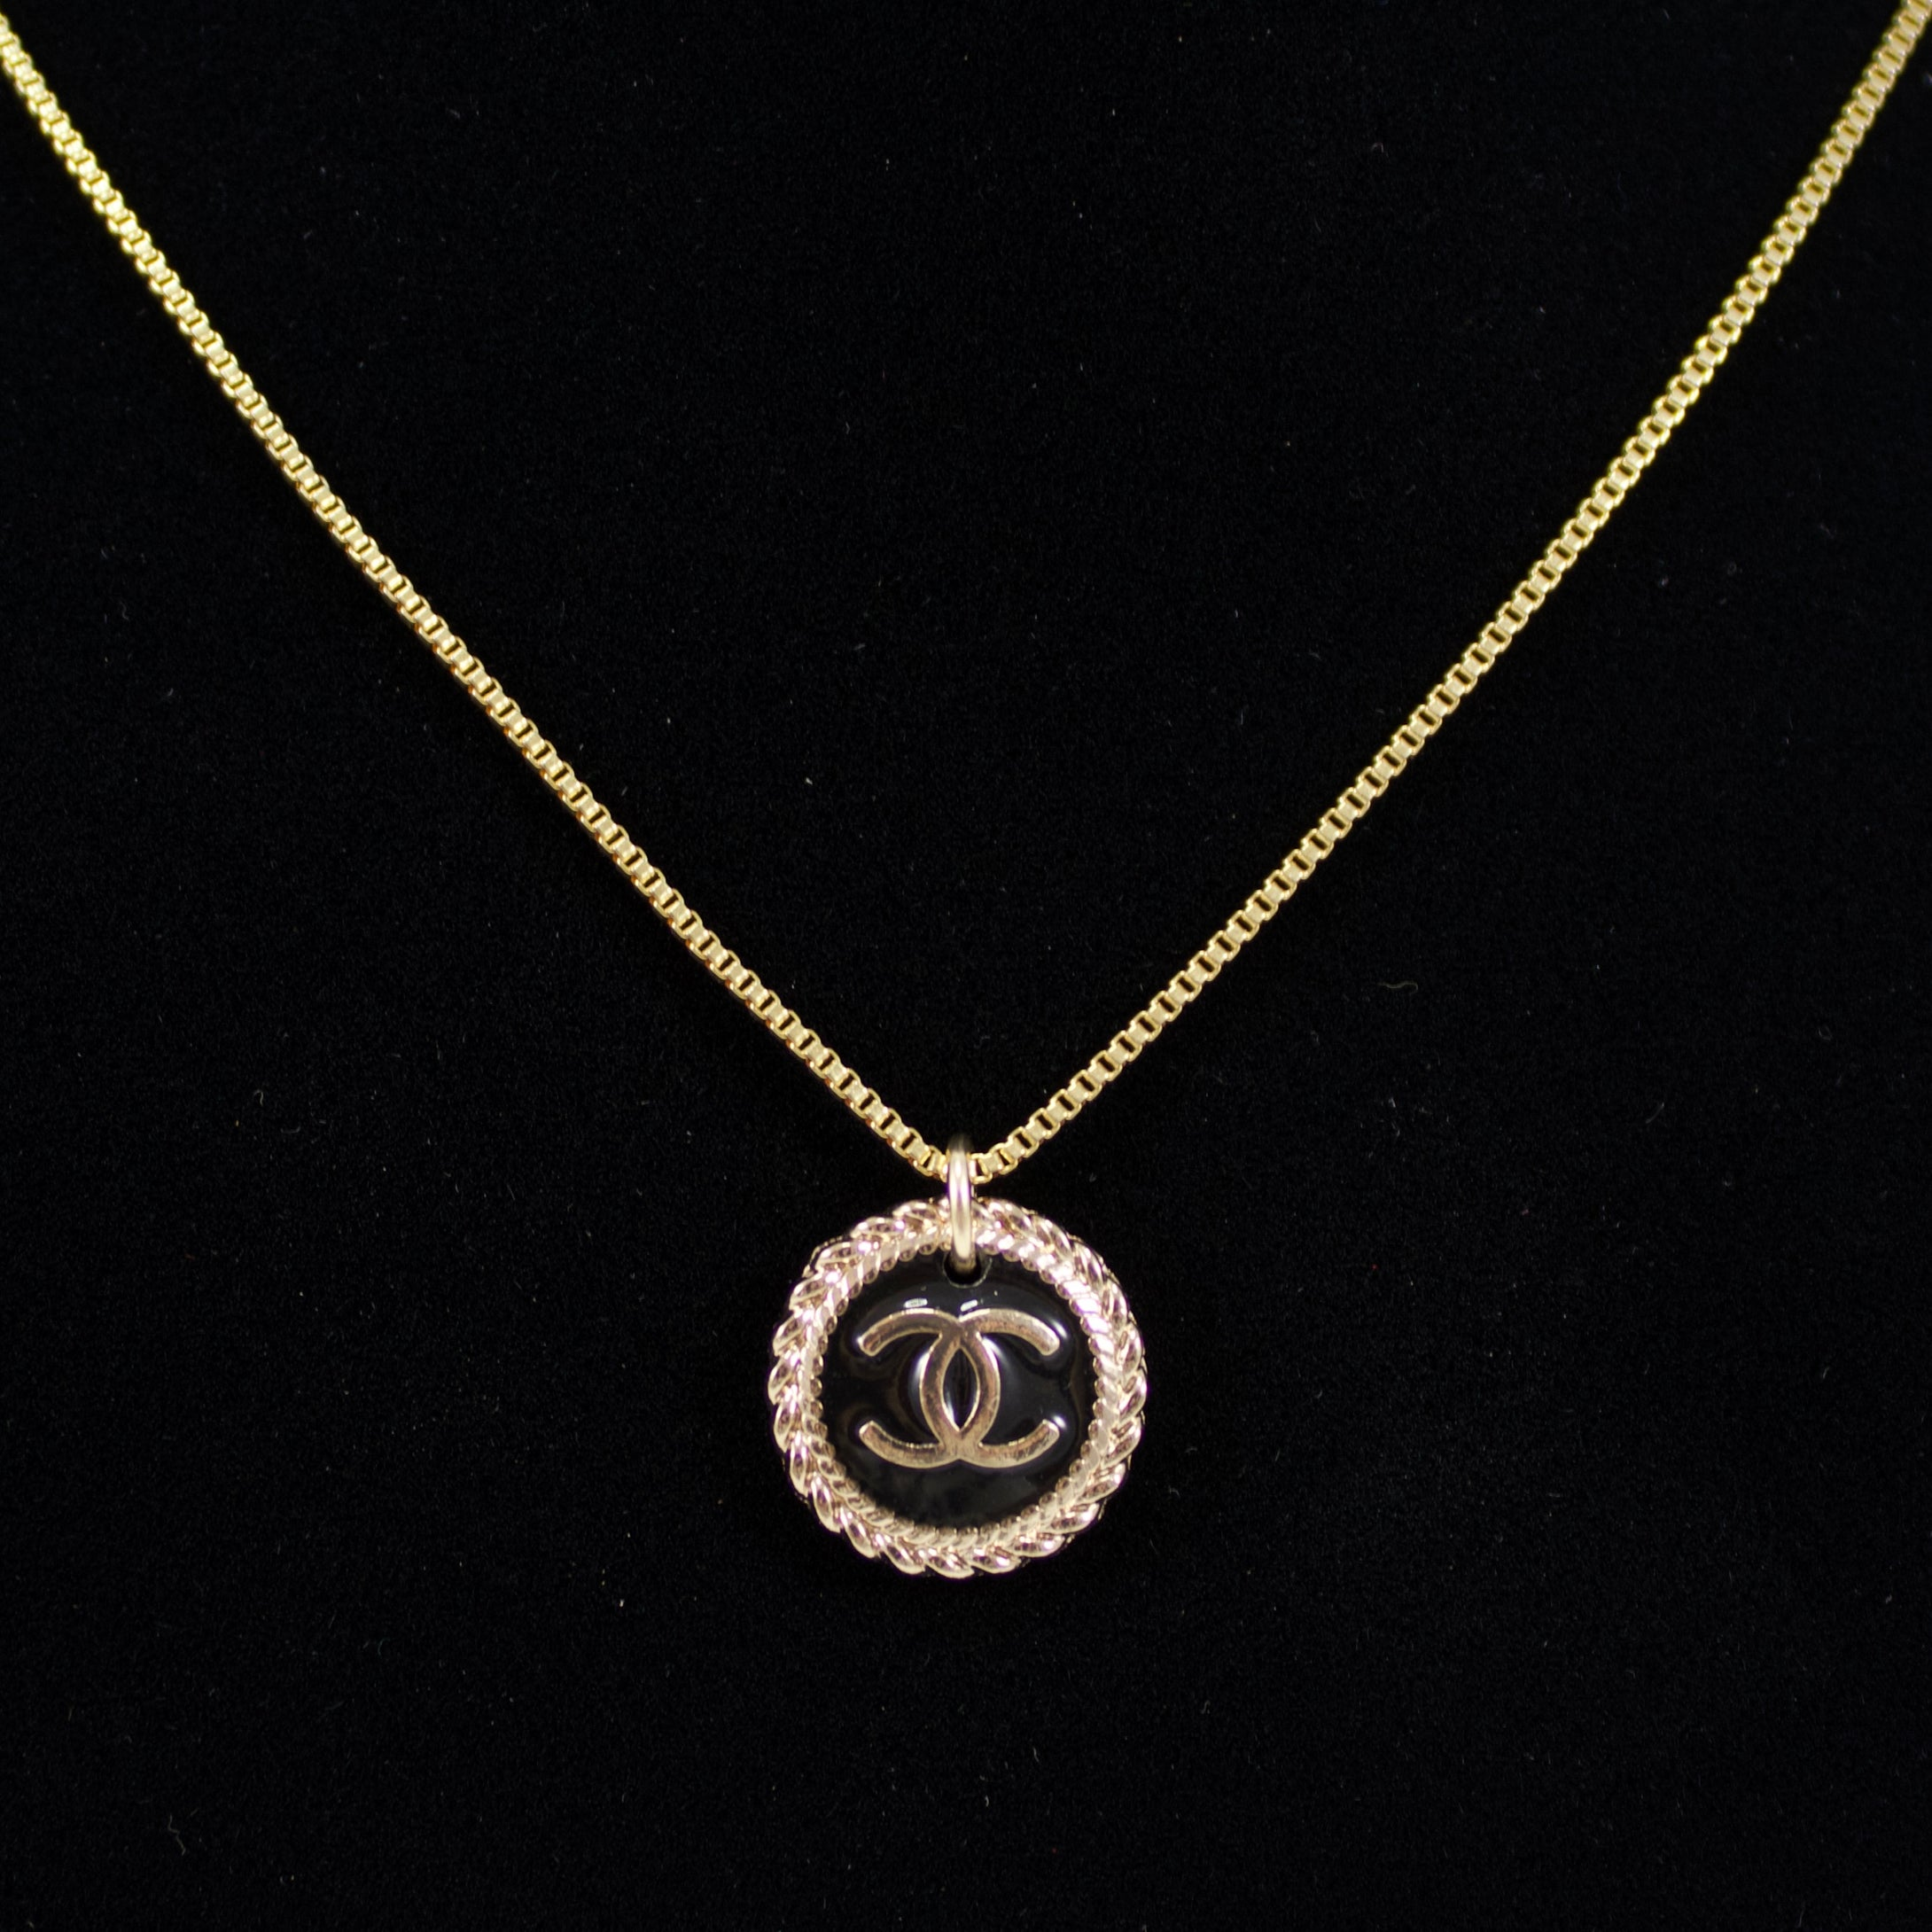 Repurposed Black And Gold Chanel CC Button Necklace